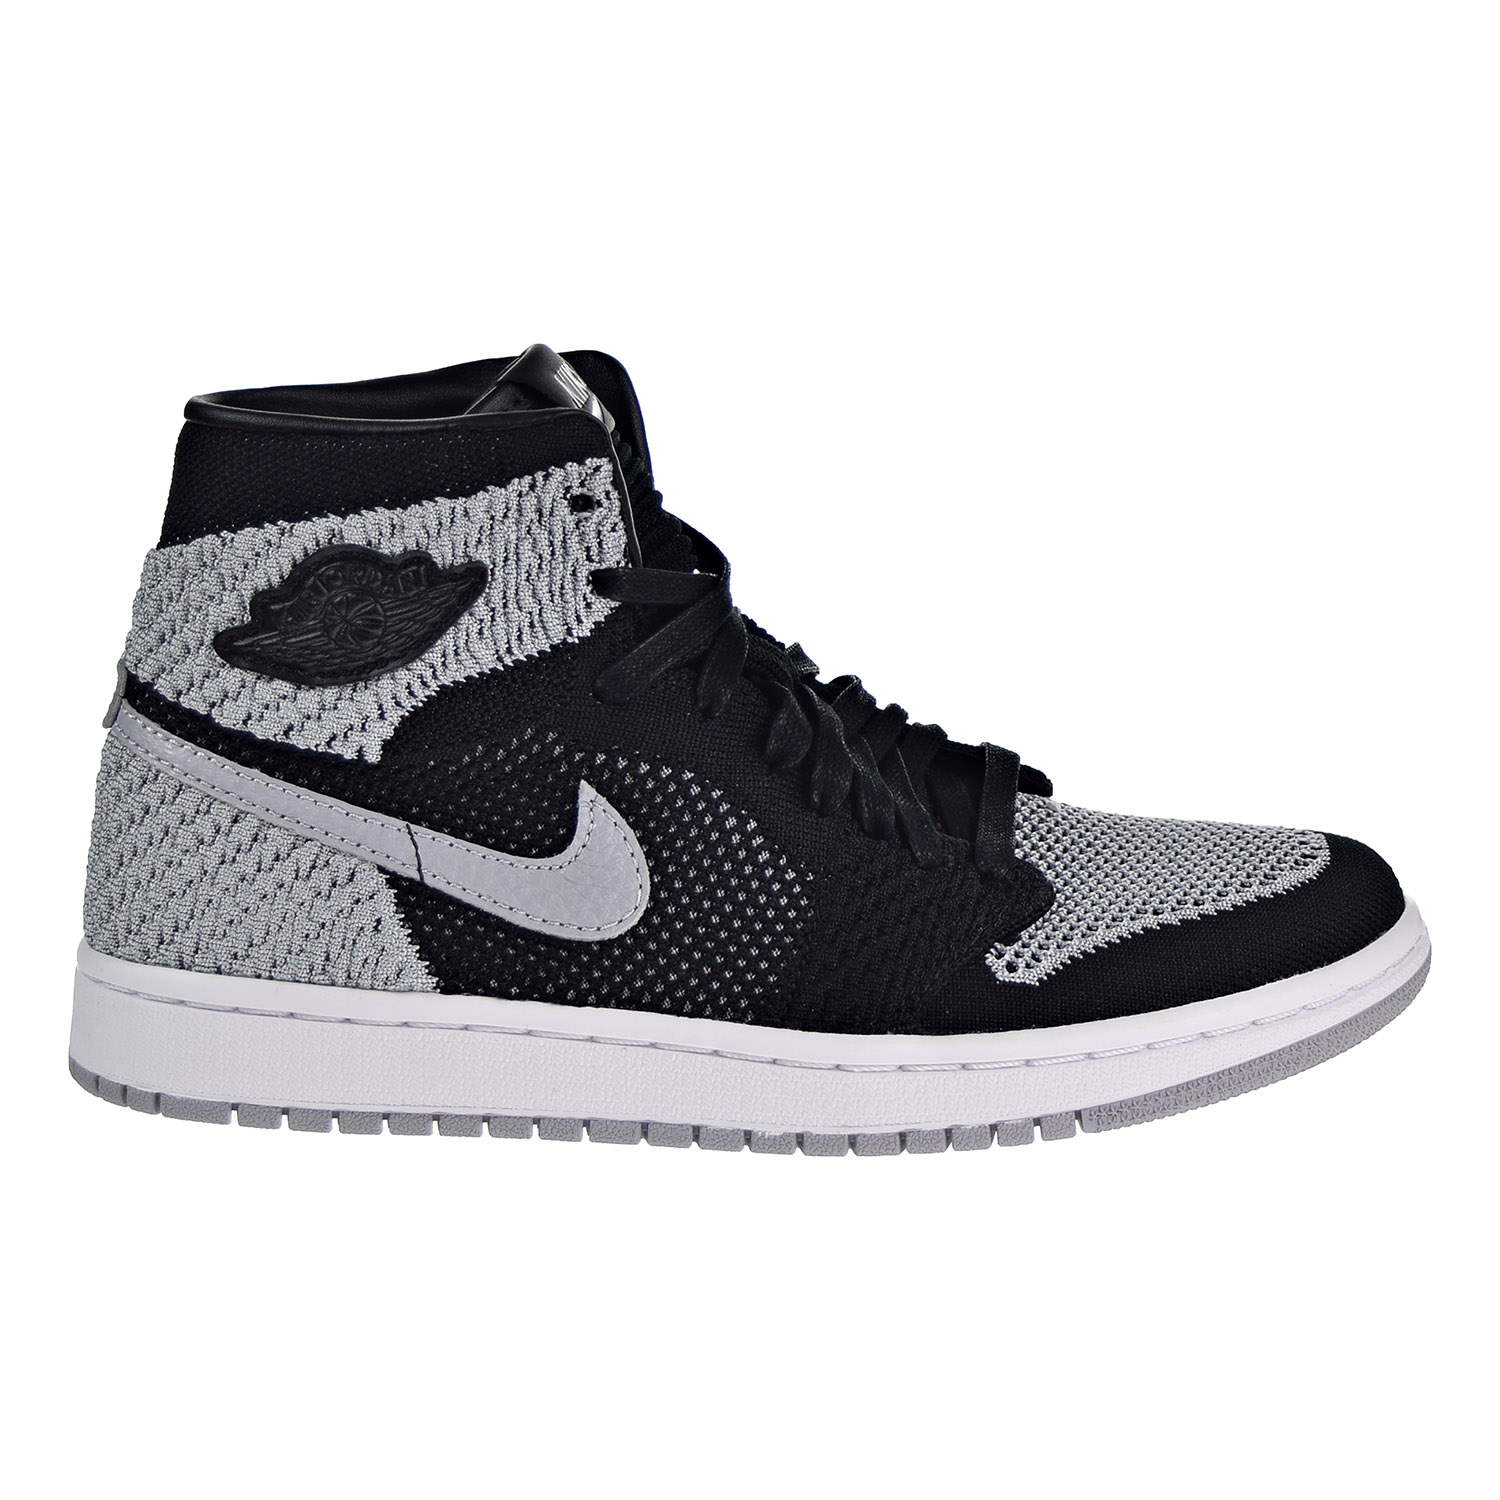 af69941e475 Details about Air Jordan 1 Retro High Flyknit Big Kid s Shoes Black Wolf  Grey White 919702-003